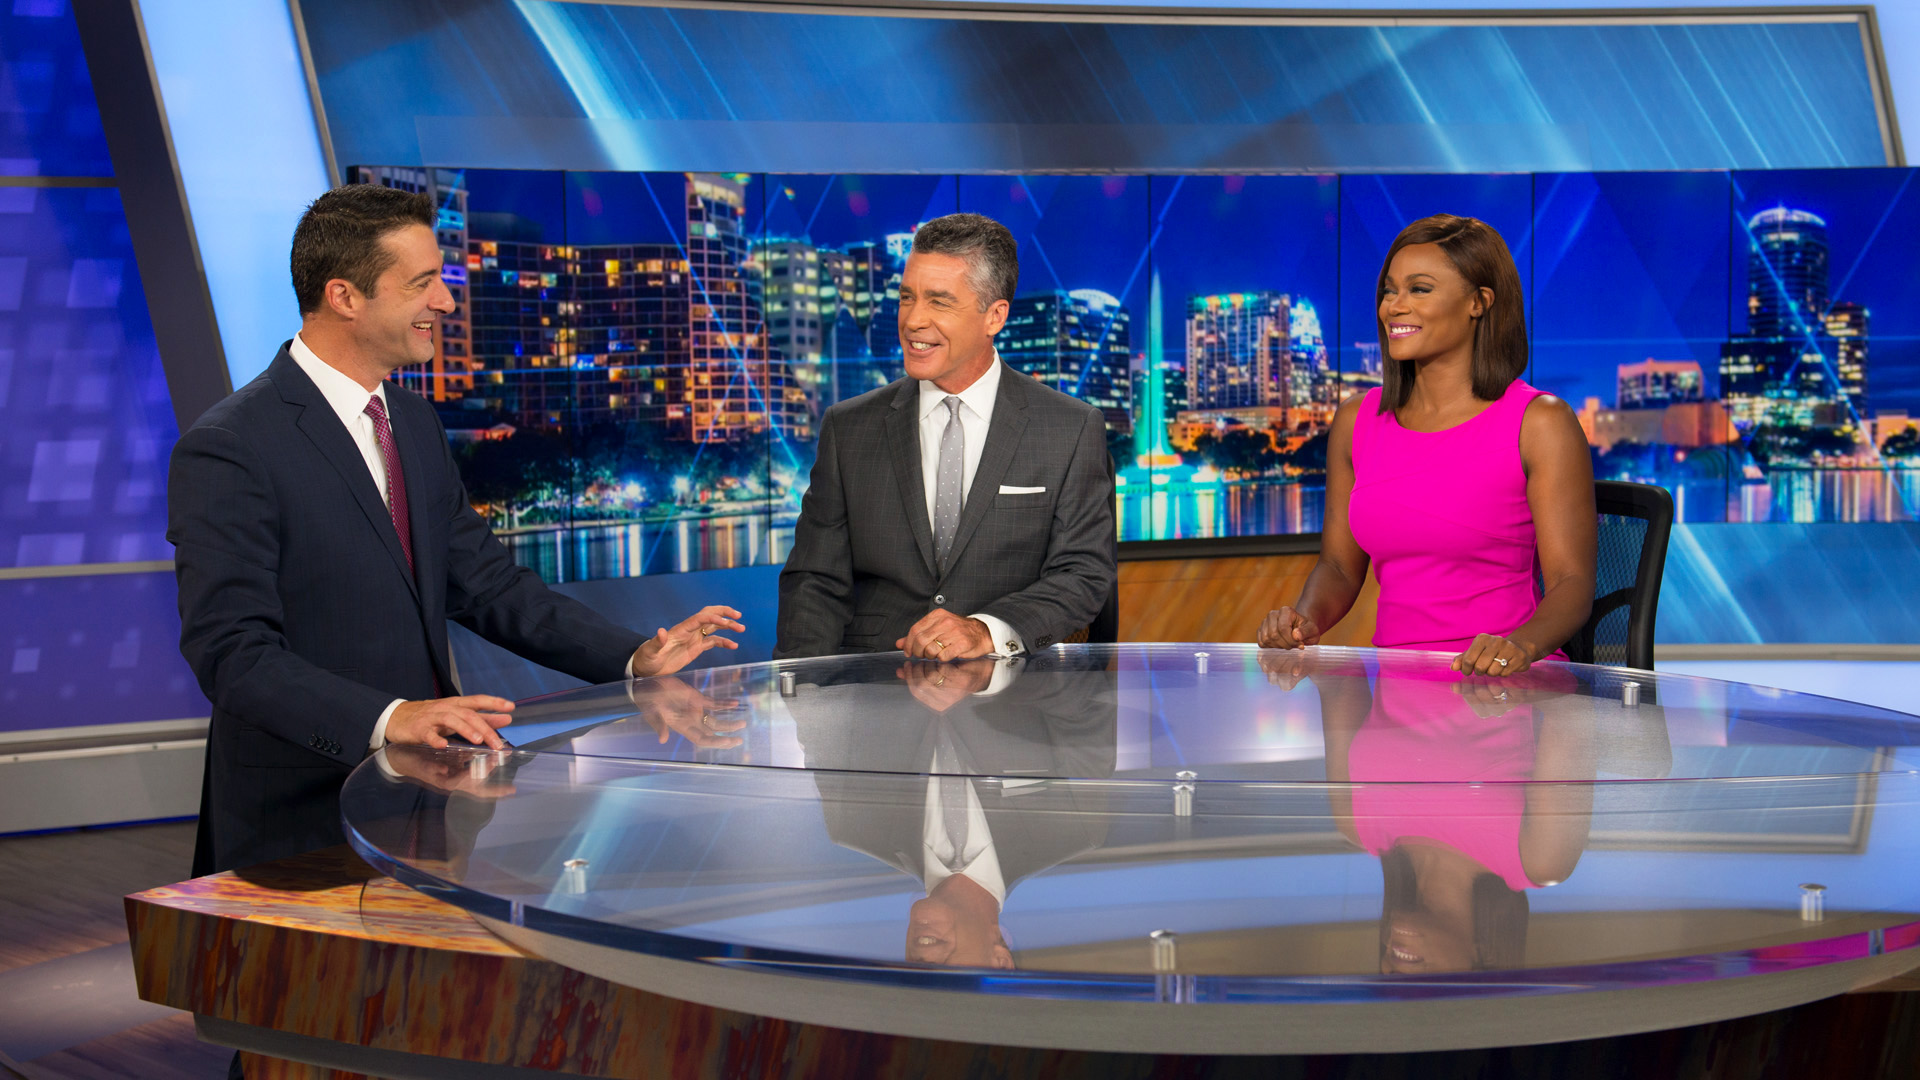 ncs_wesh-2-news-tv-studio-devlin_0012